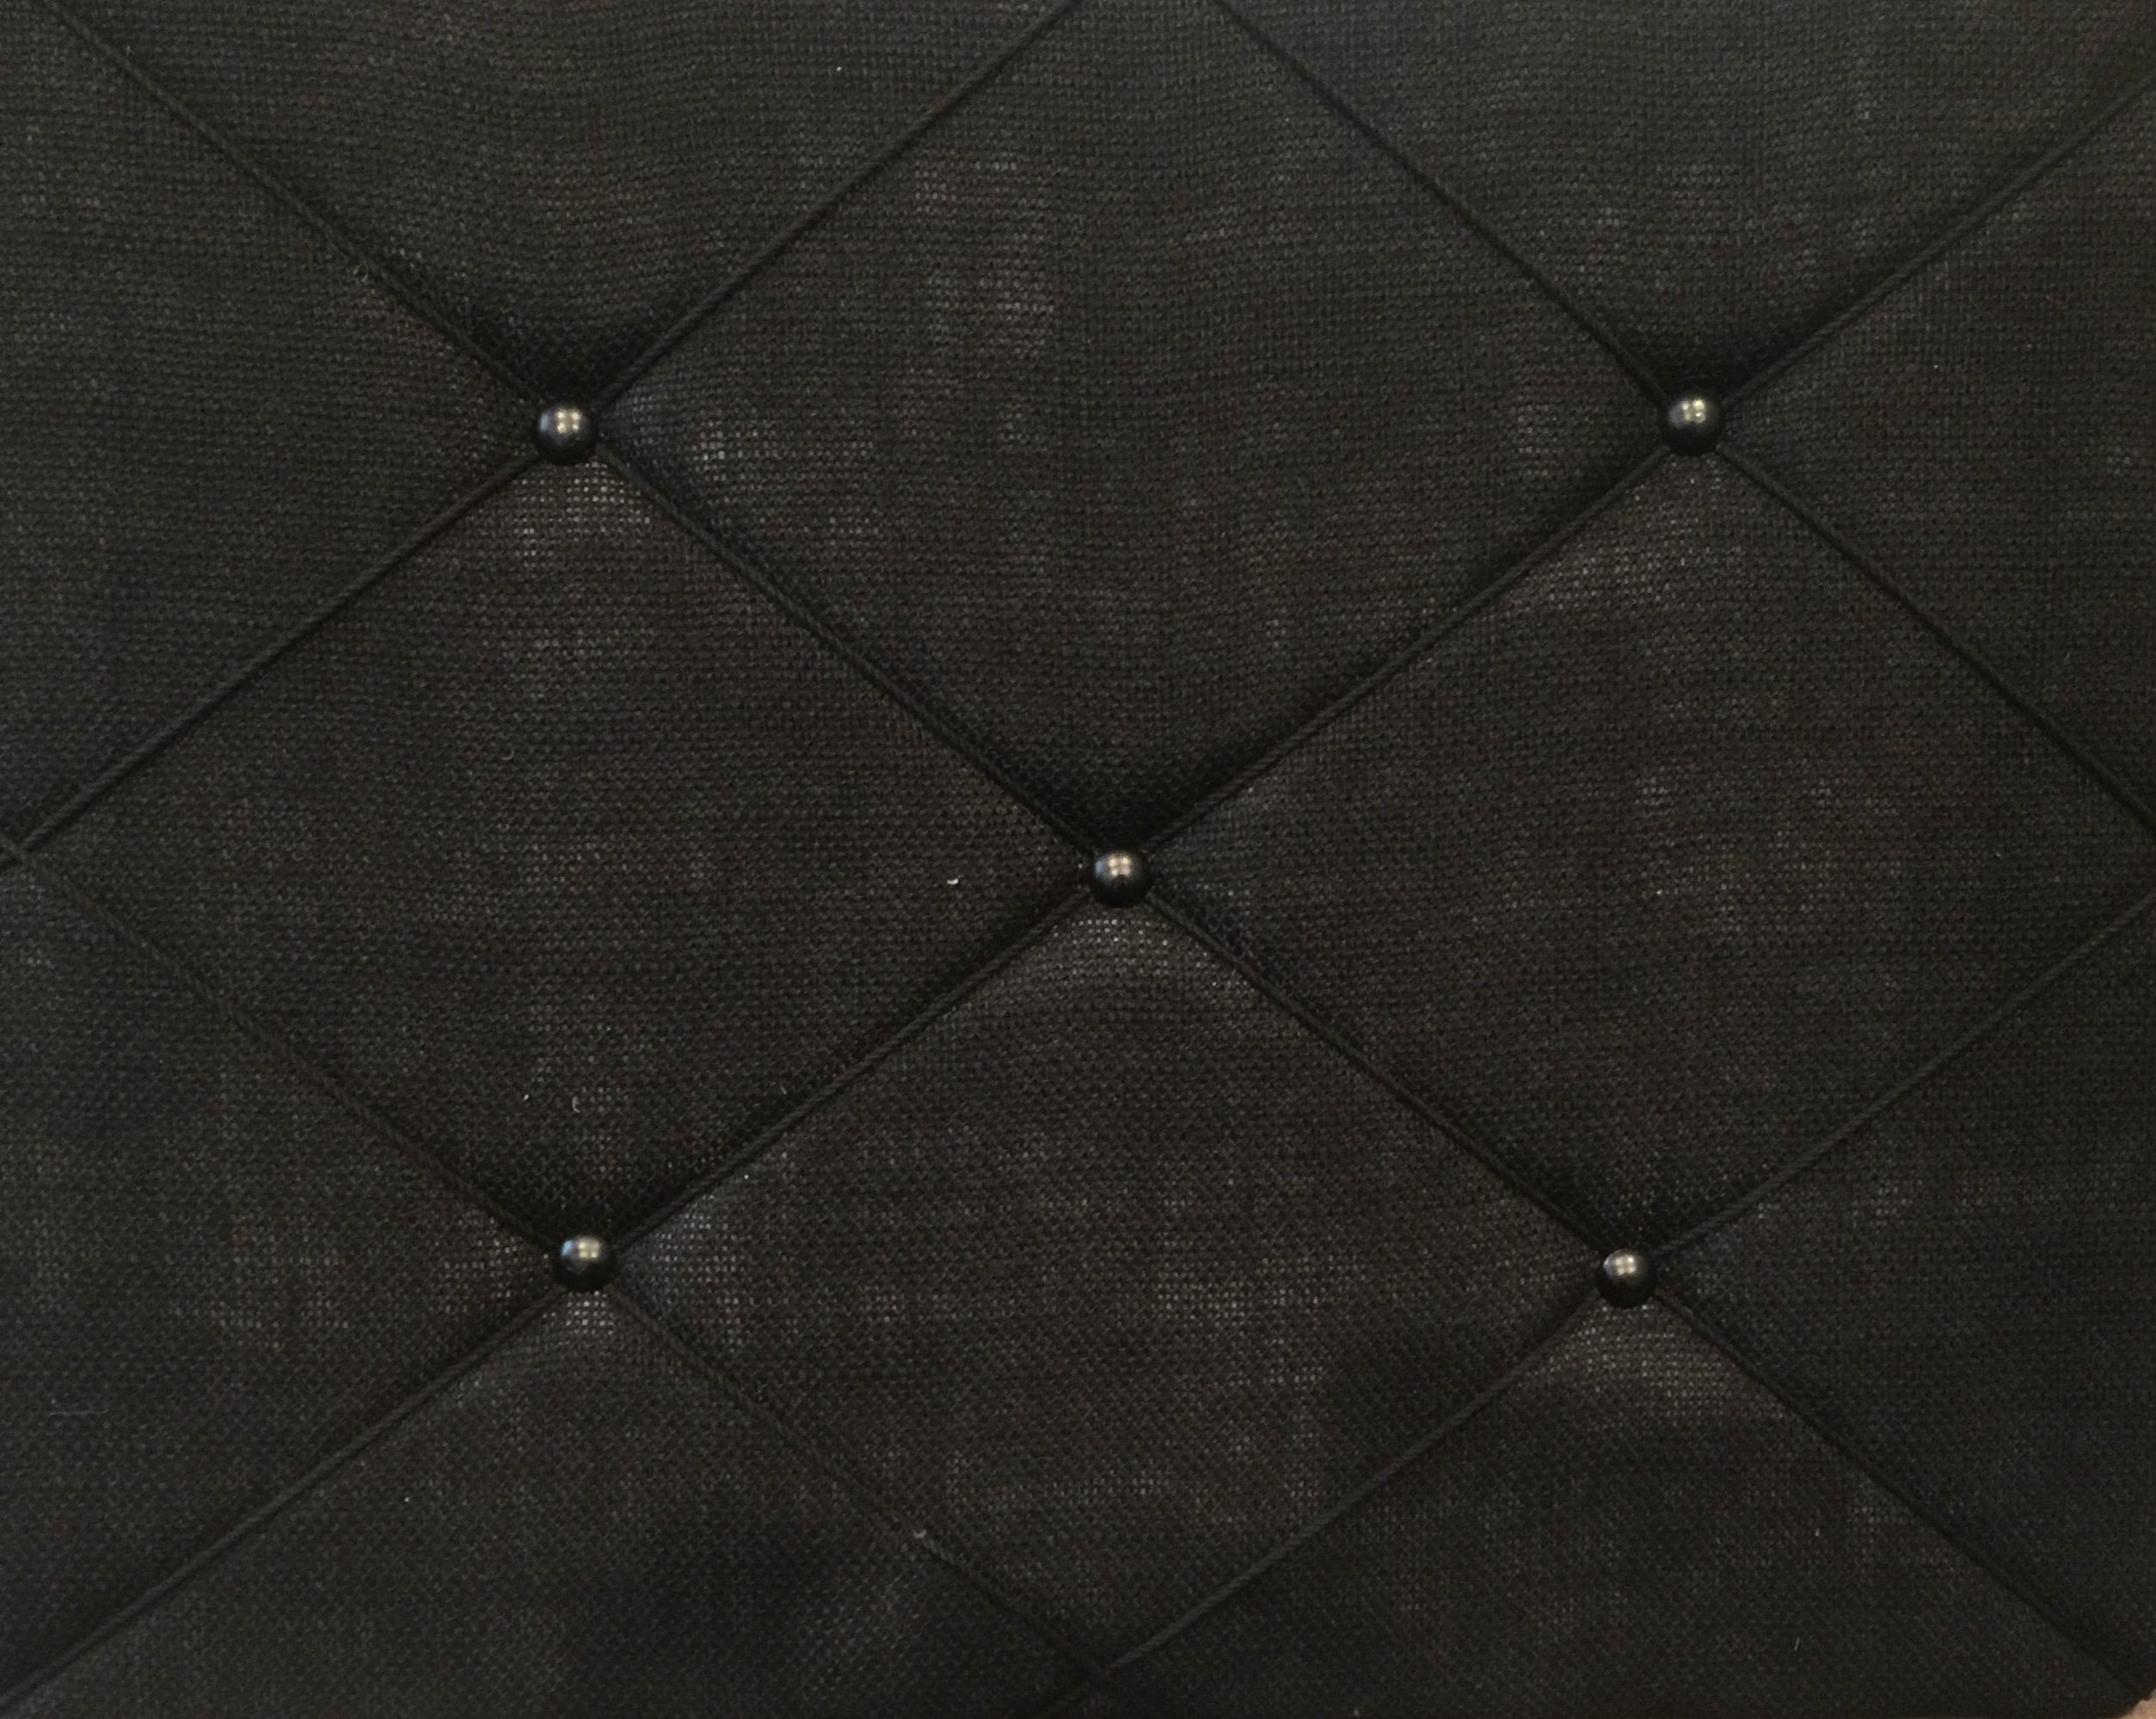 ReLIVE Burlap Covered Bulletin Picture Board with Crisscross Twine, 19.75 x 15.75, Black